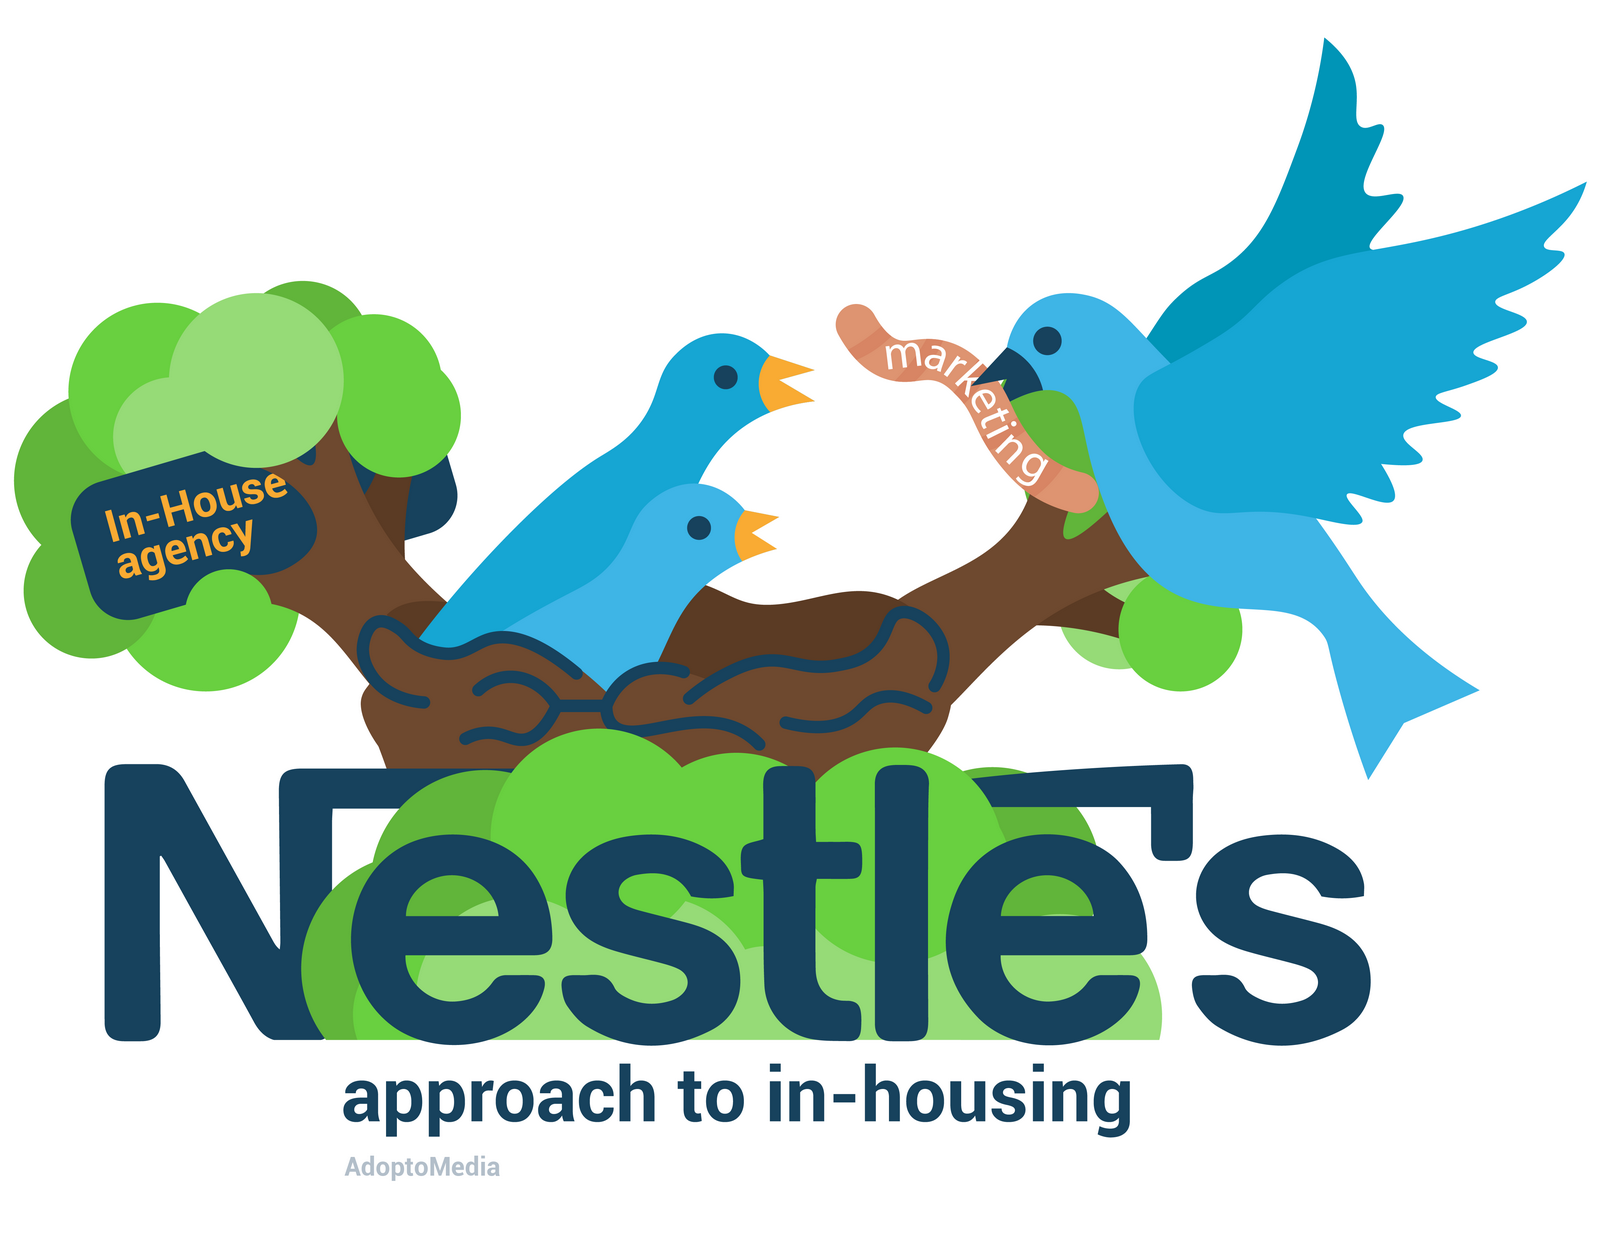 Nestlé, hybrid approach to in-housing, effective marketing